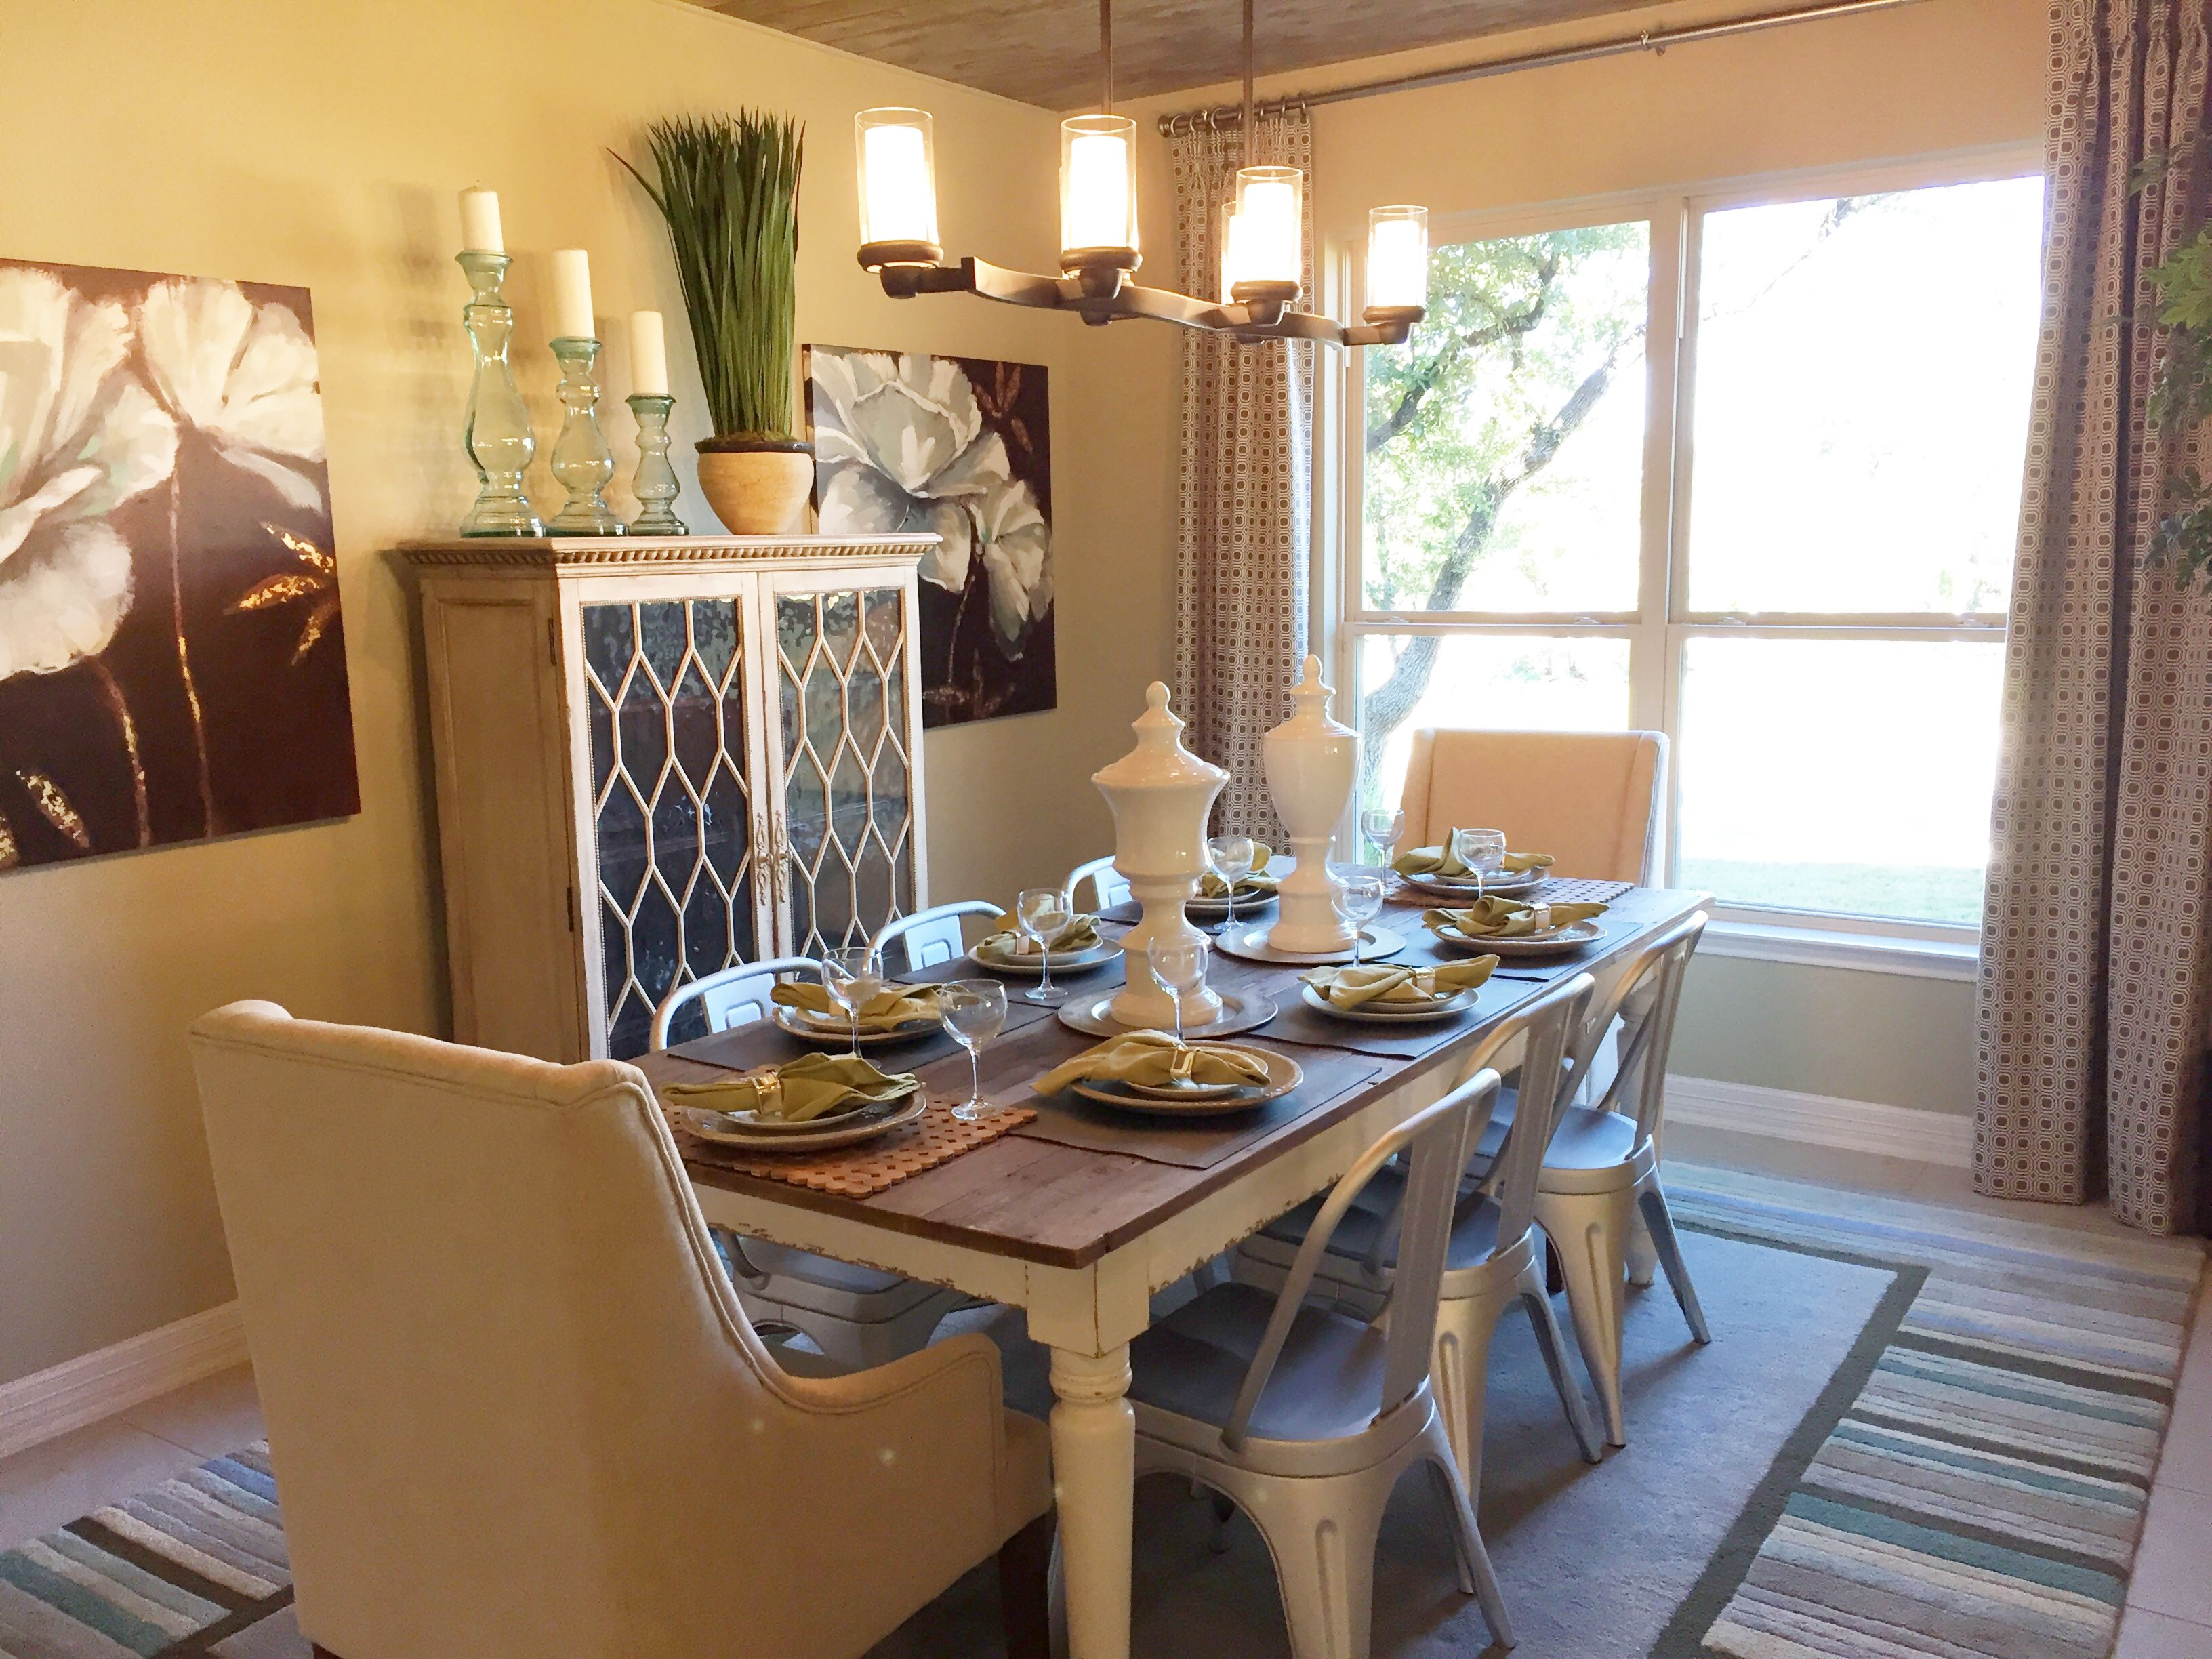 Farmhouse Table With Mix Of Upholstered And Metal Chairs Sitterle Model